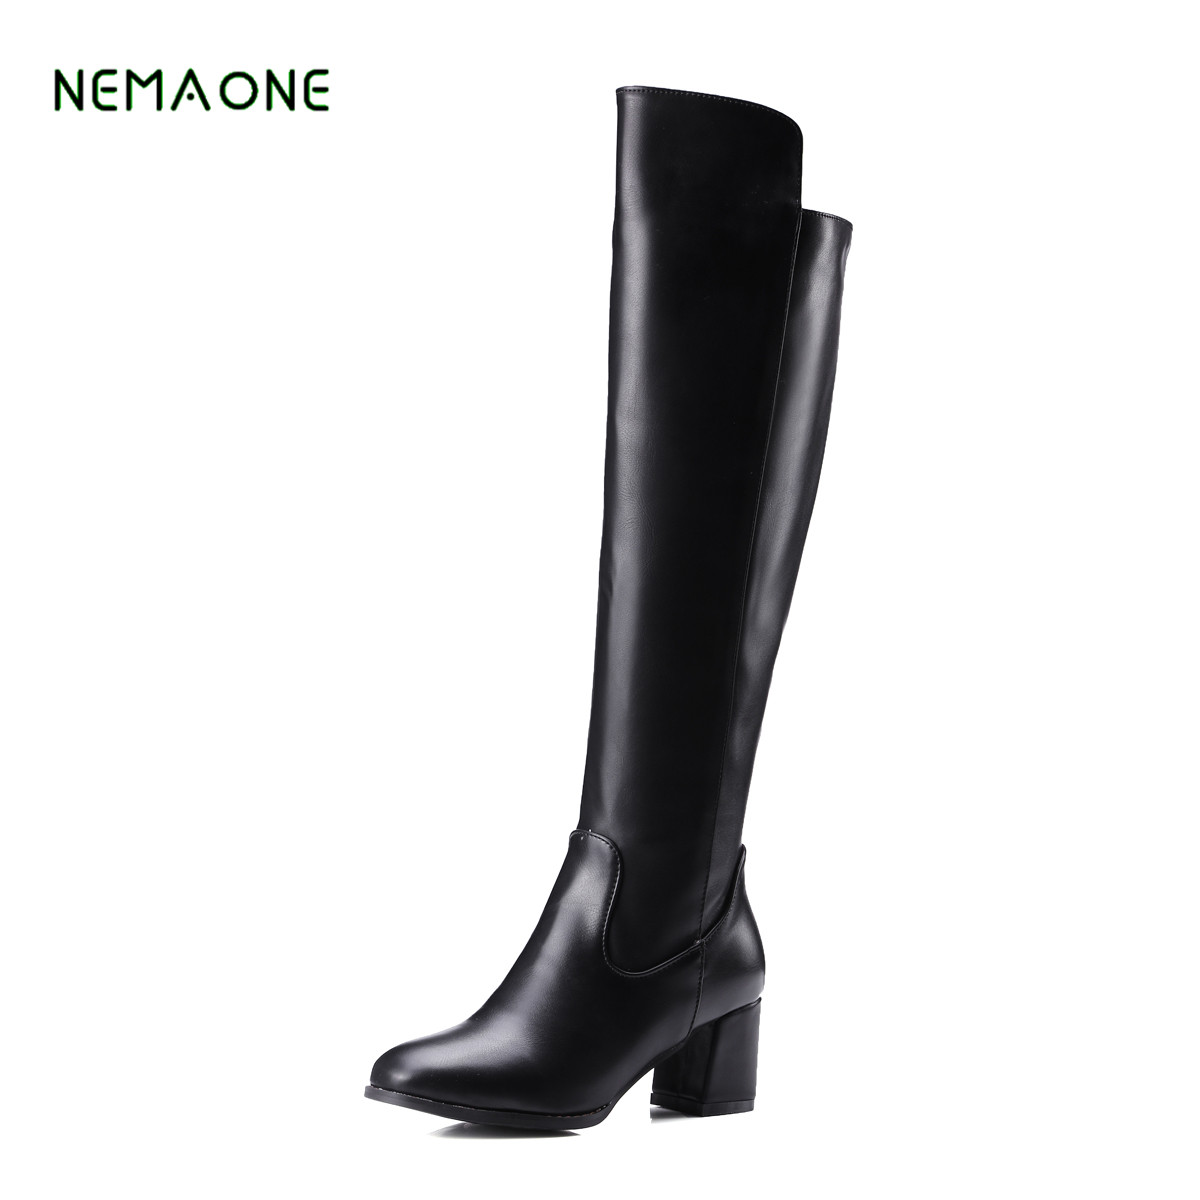 NEMAONE 2017 NEW Women Winter Thigh Boots Thick High Heel Over The Knee Boots Zip Rivet Shoes Woman Khaki Black qiu dong in fashionable boots sexy and comfortable women s shoes the new national style high heel heel thick heel